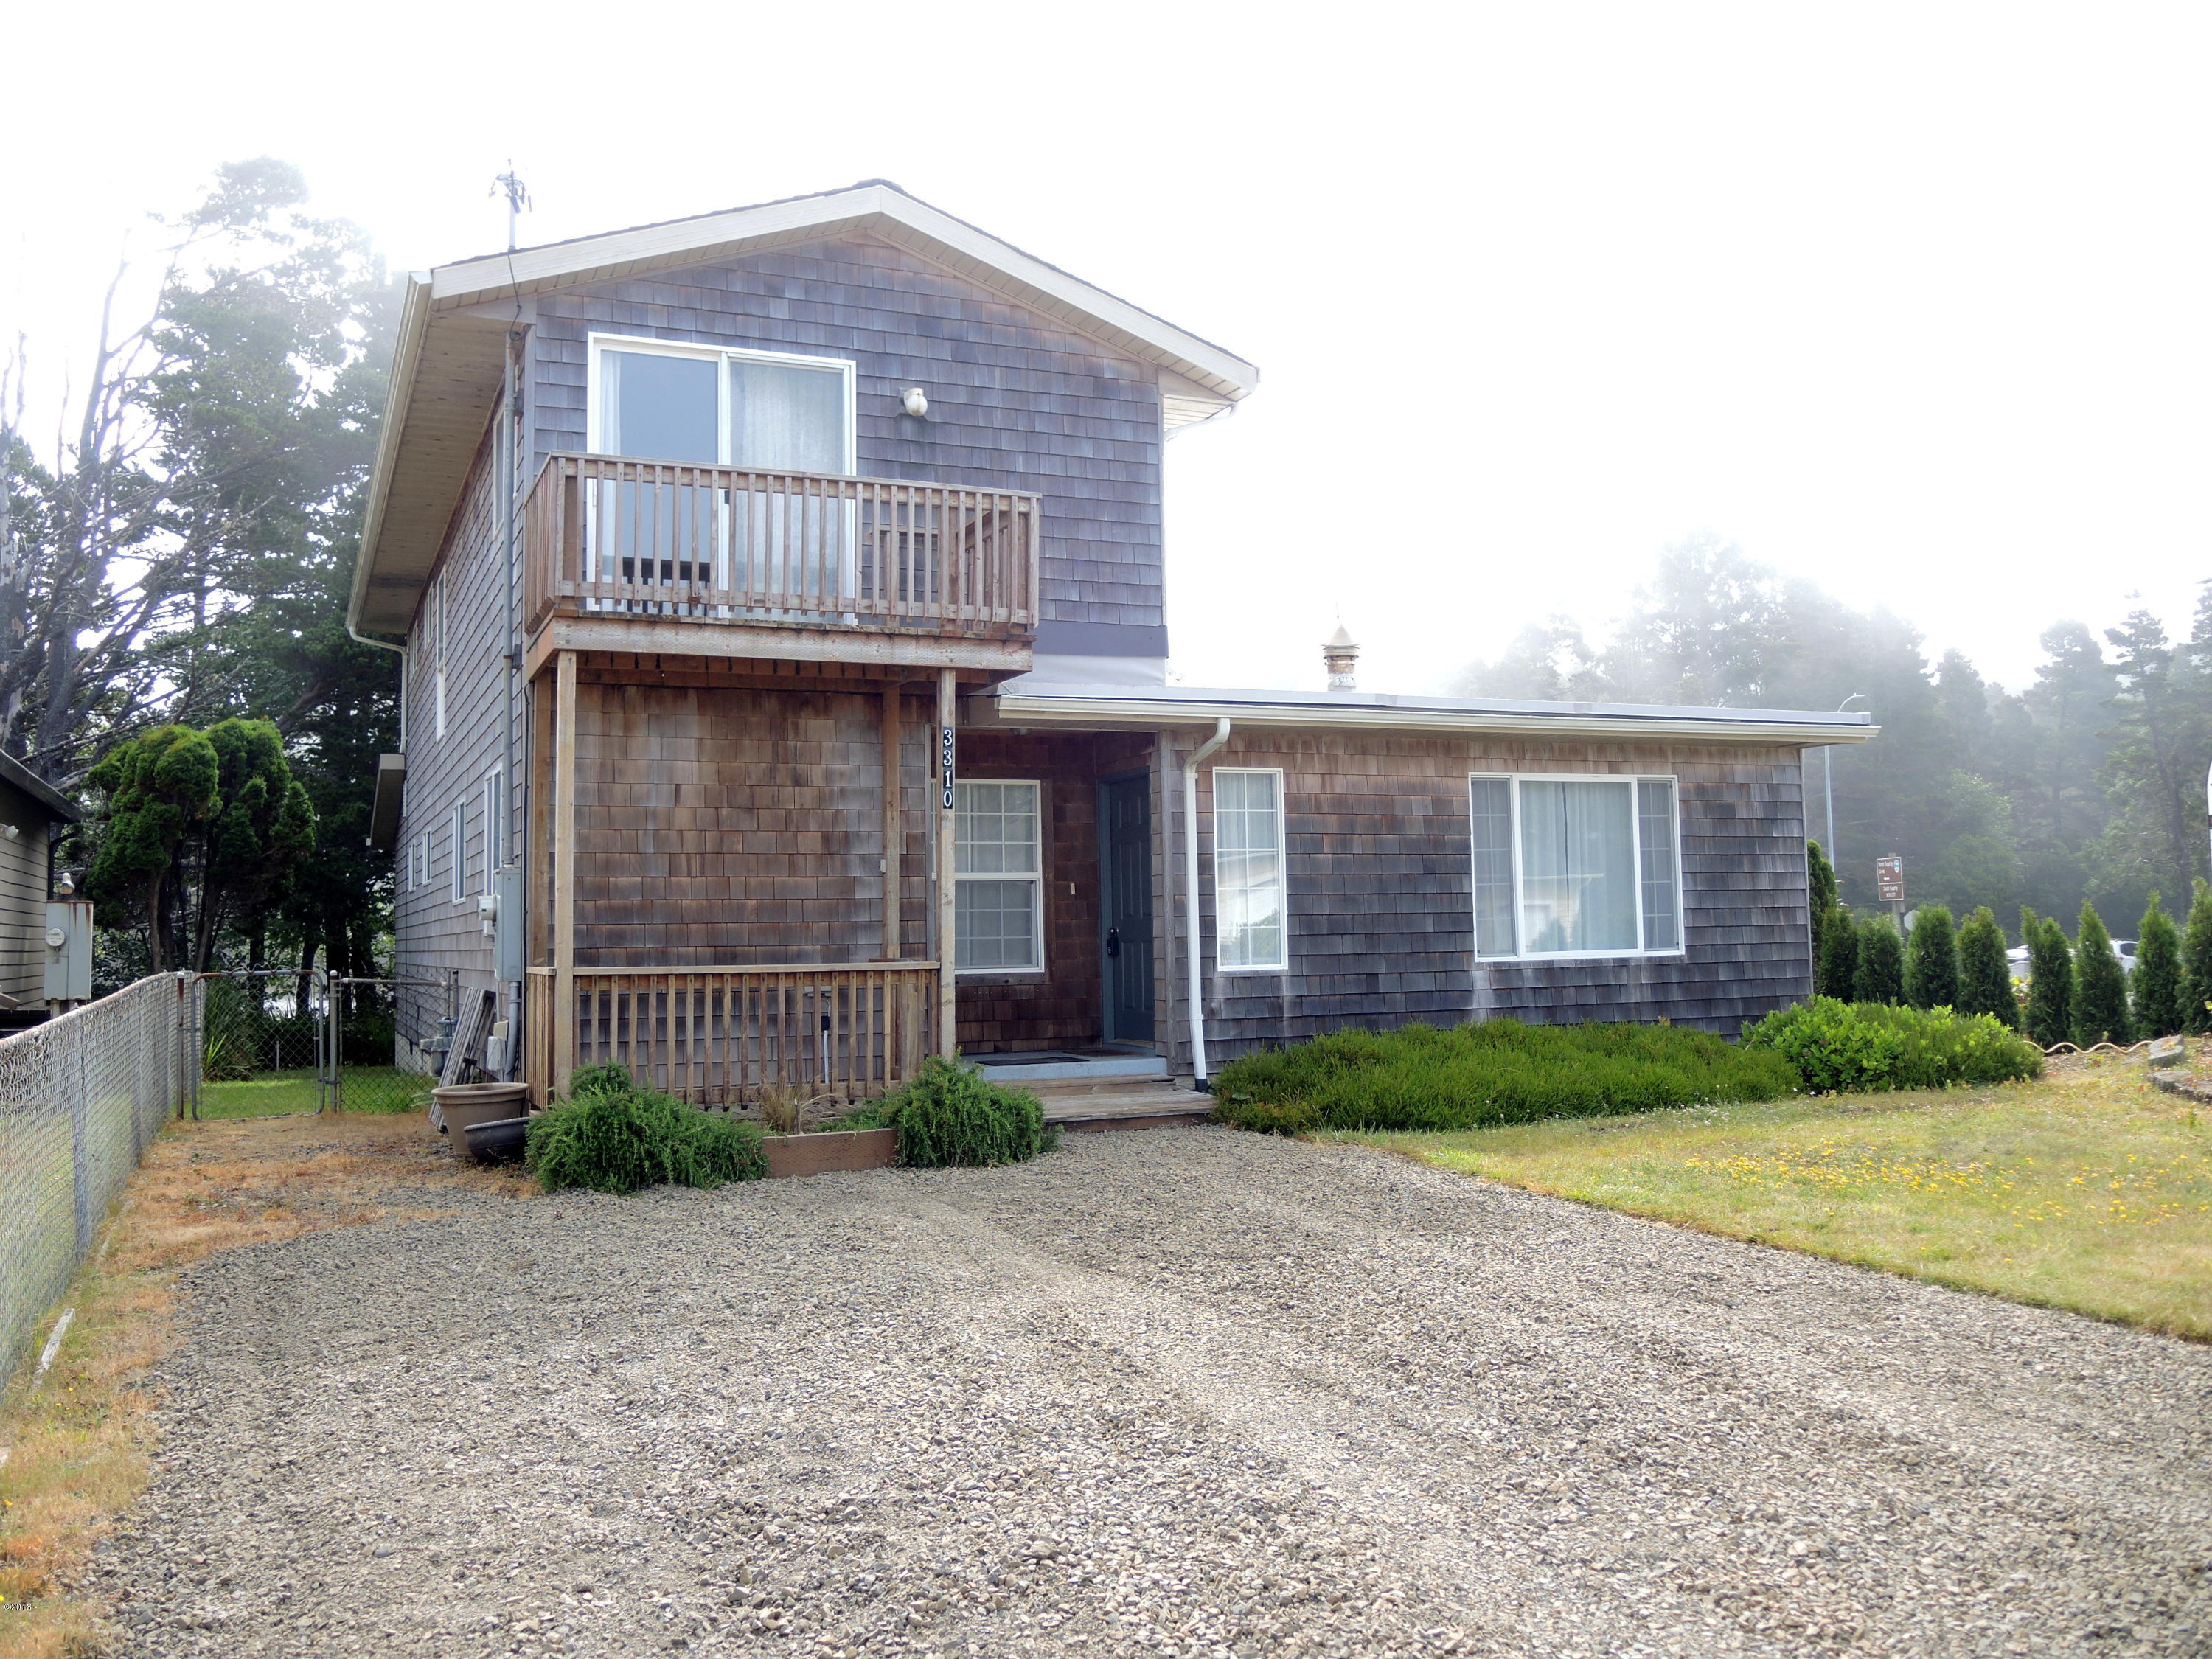 3310 Chinook Ave, Depoe Bay, OR 97341 - front